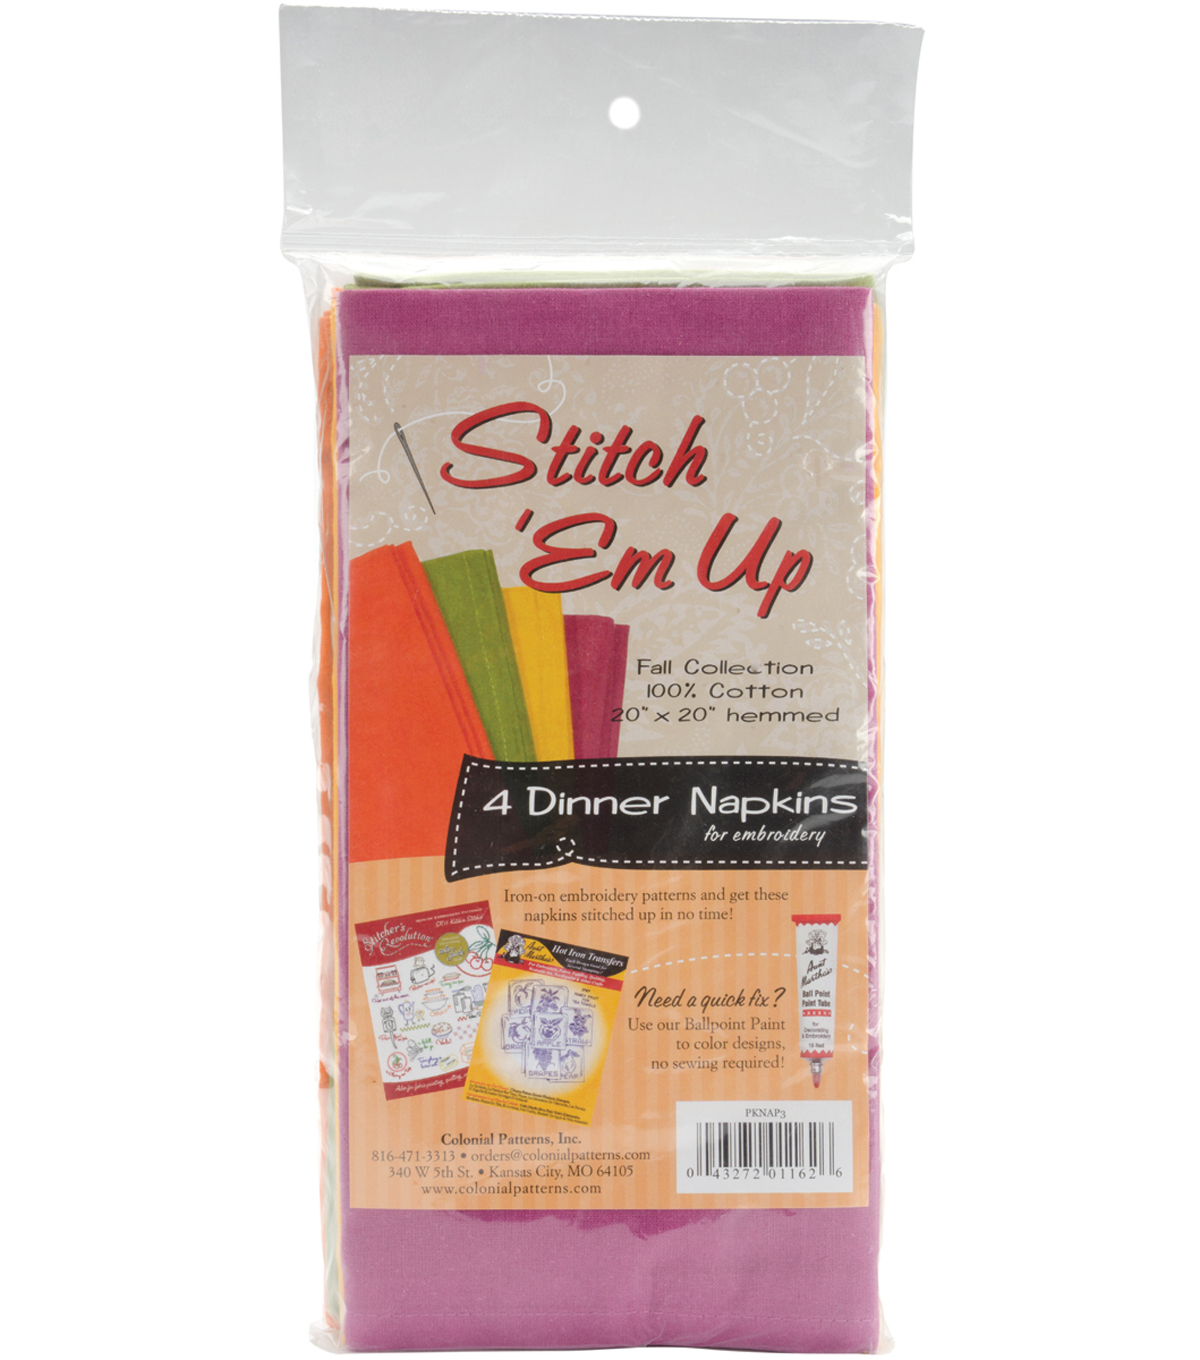 Stitch \u0027em Up Dinner Napkins For Embroidery 4/Pkg-Fall Collection